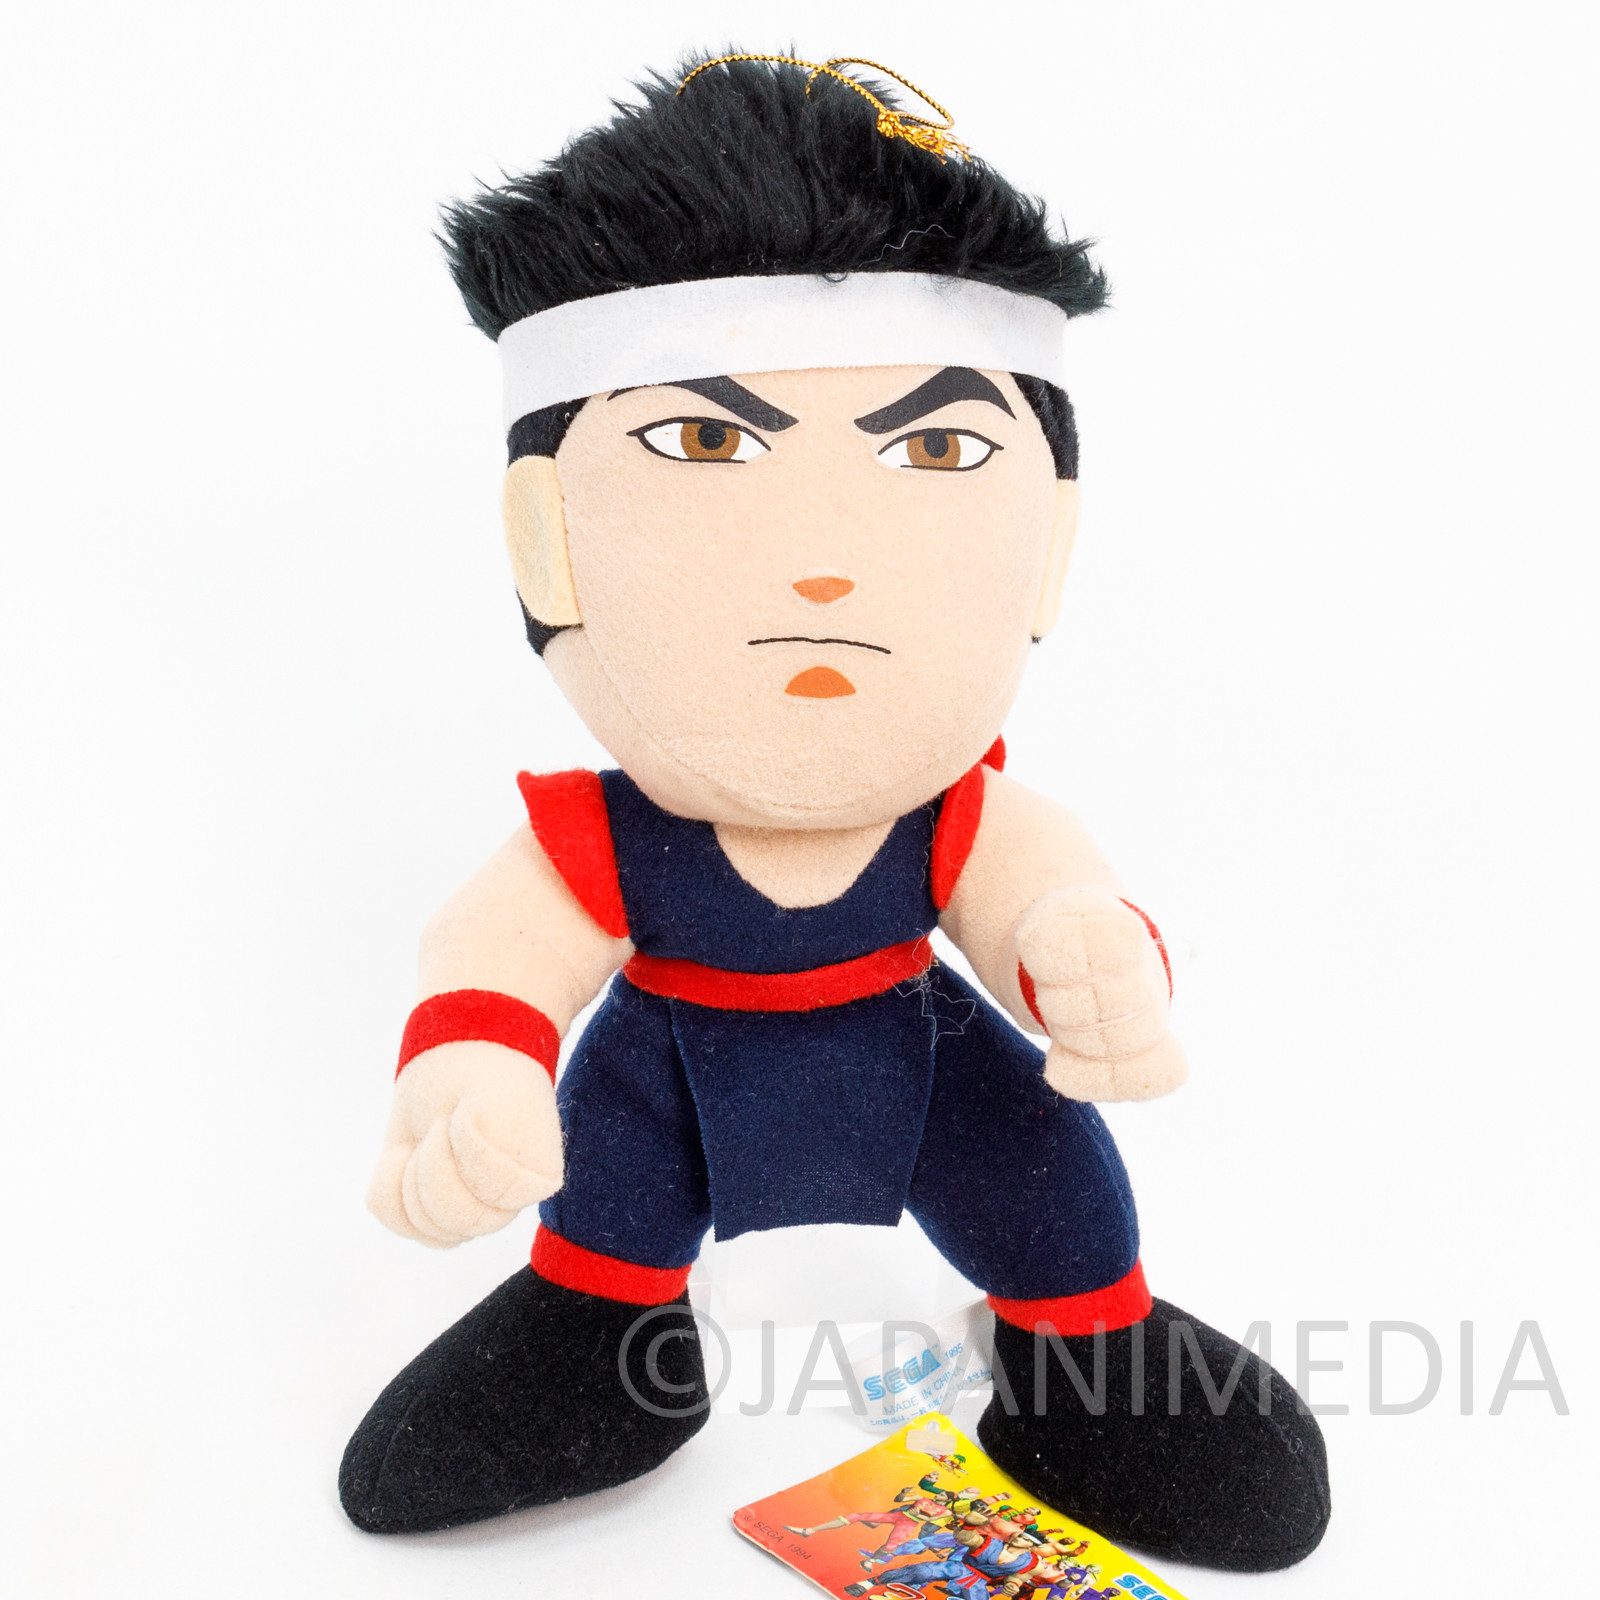 "Virtua Fighter Akira Yuki Plush Doll 9"" SEGA 1994 JAPAN"